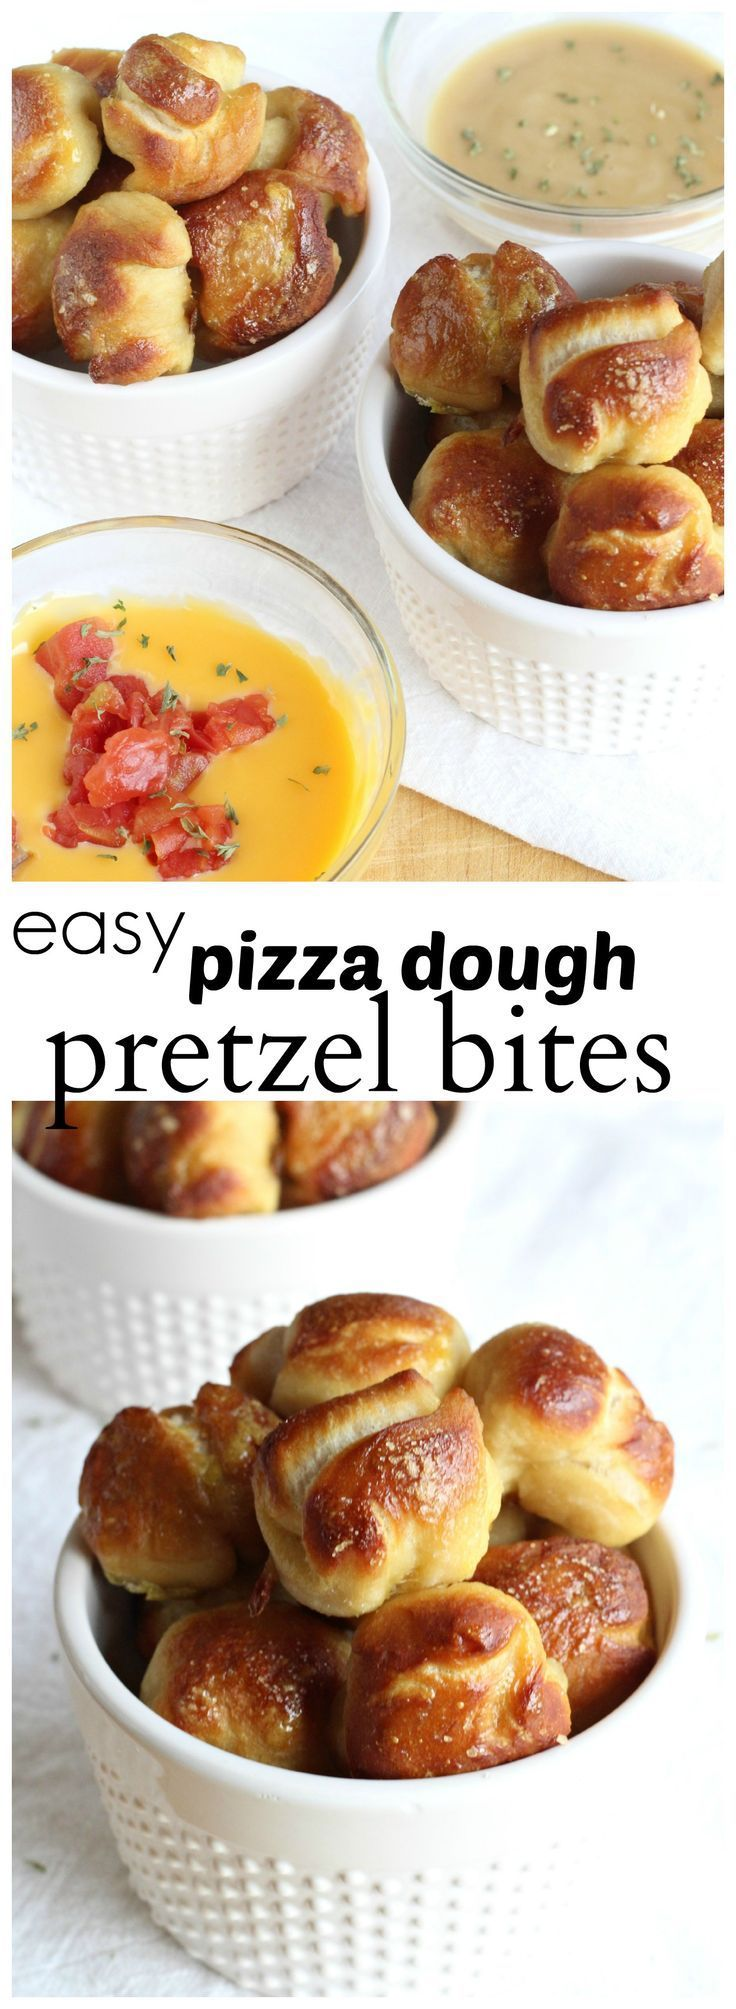 Super easy pretzel bites made with pizza dough. #MinionsMovieNight #ad